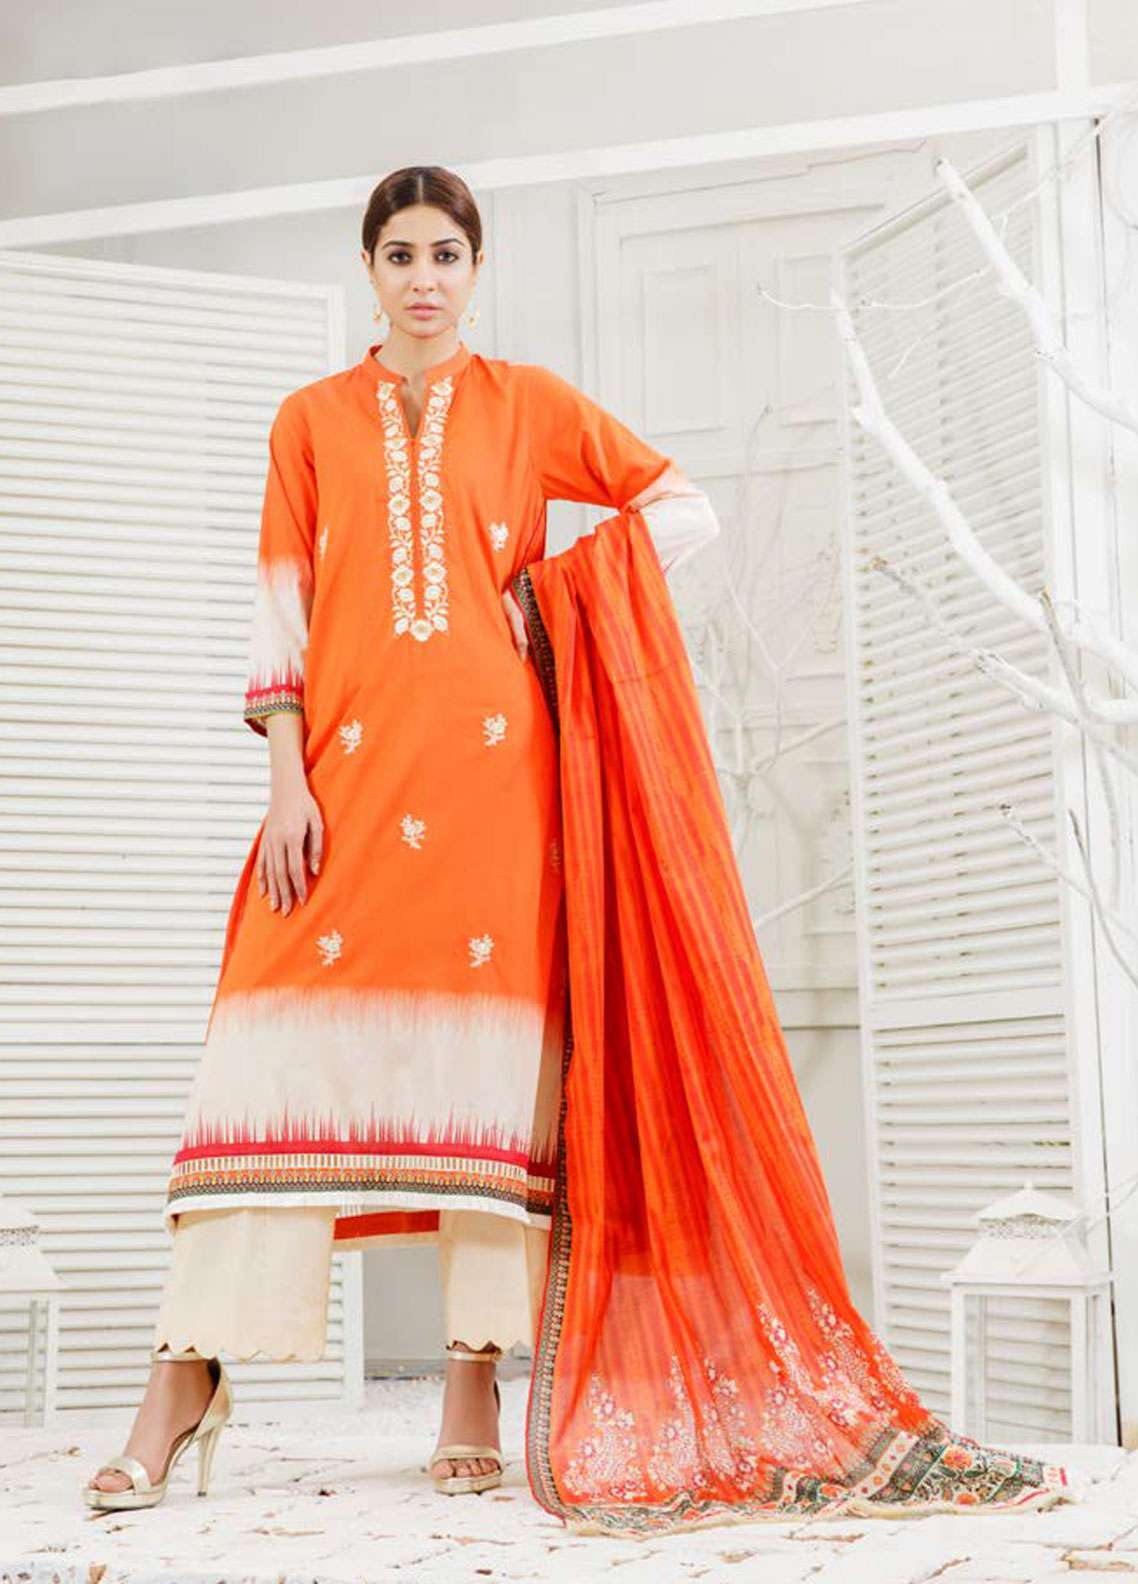 Orient Textile Embroidered Lawn Unstitched 3 Piece Suit OT19-L2 130 B - Spring / Summer Collection